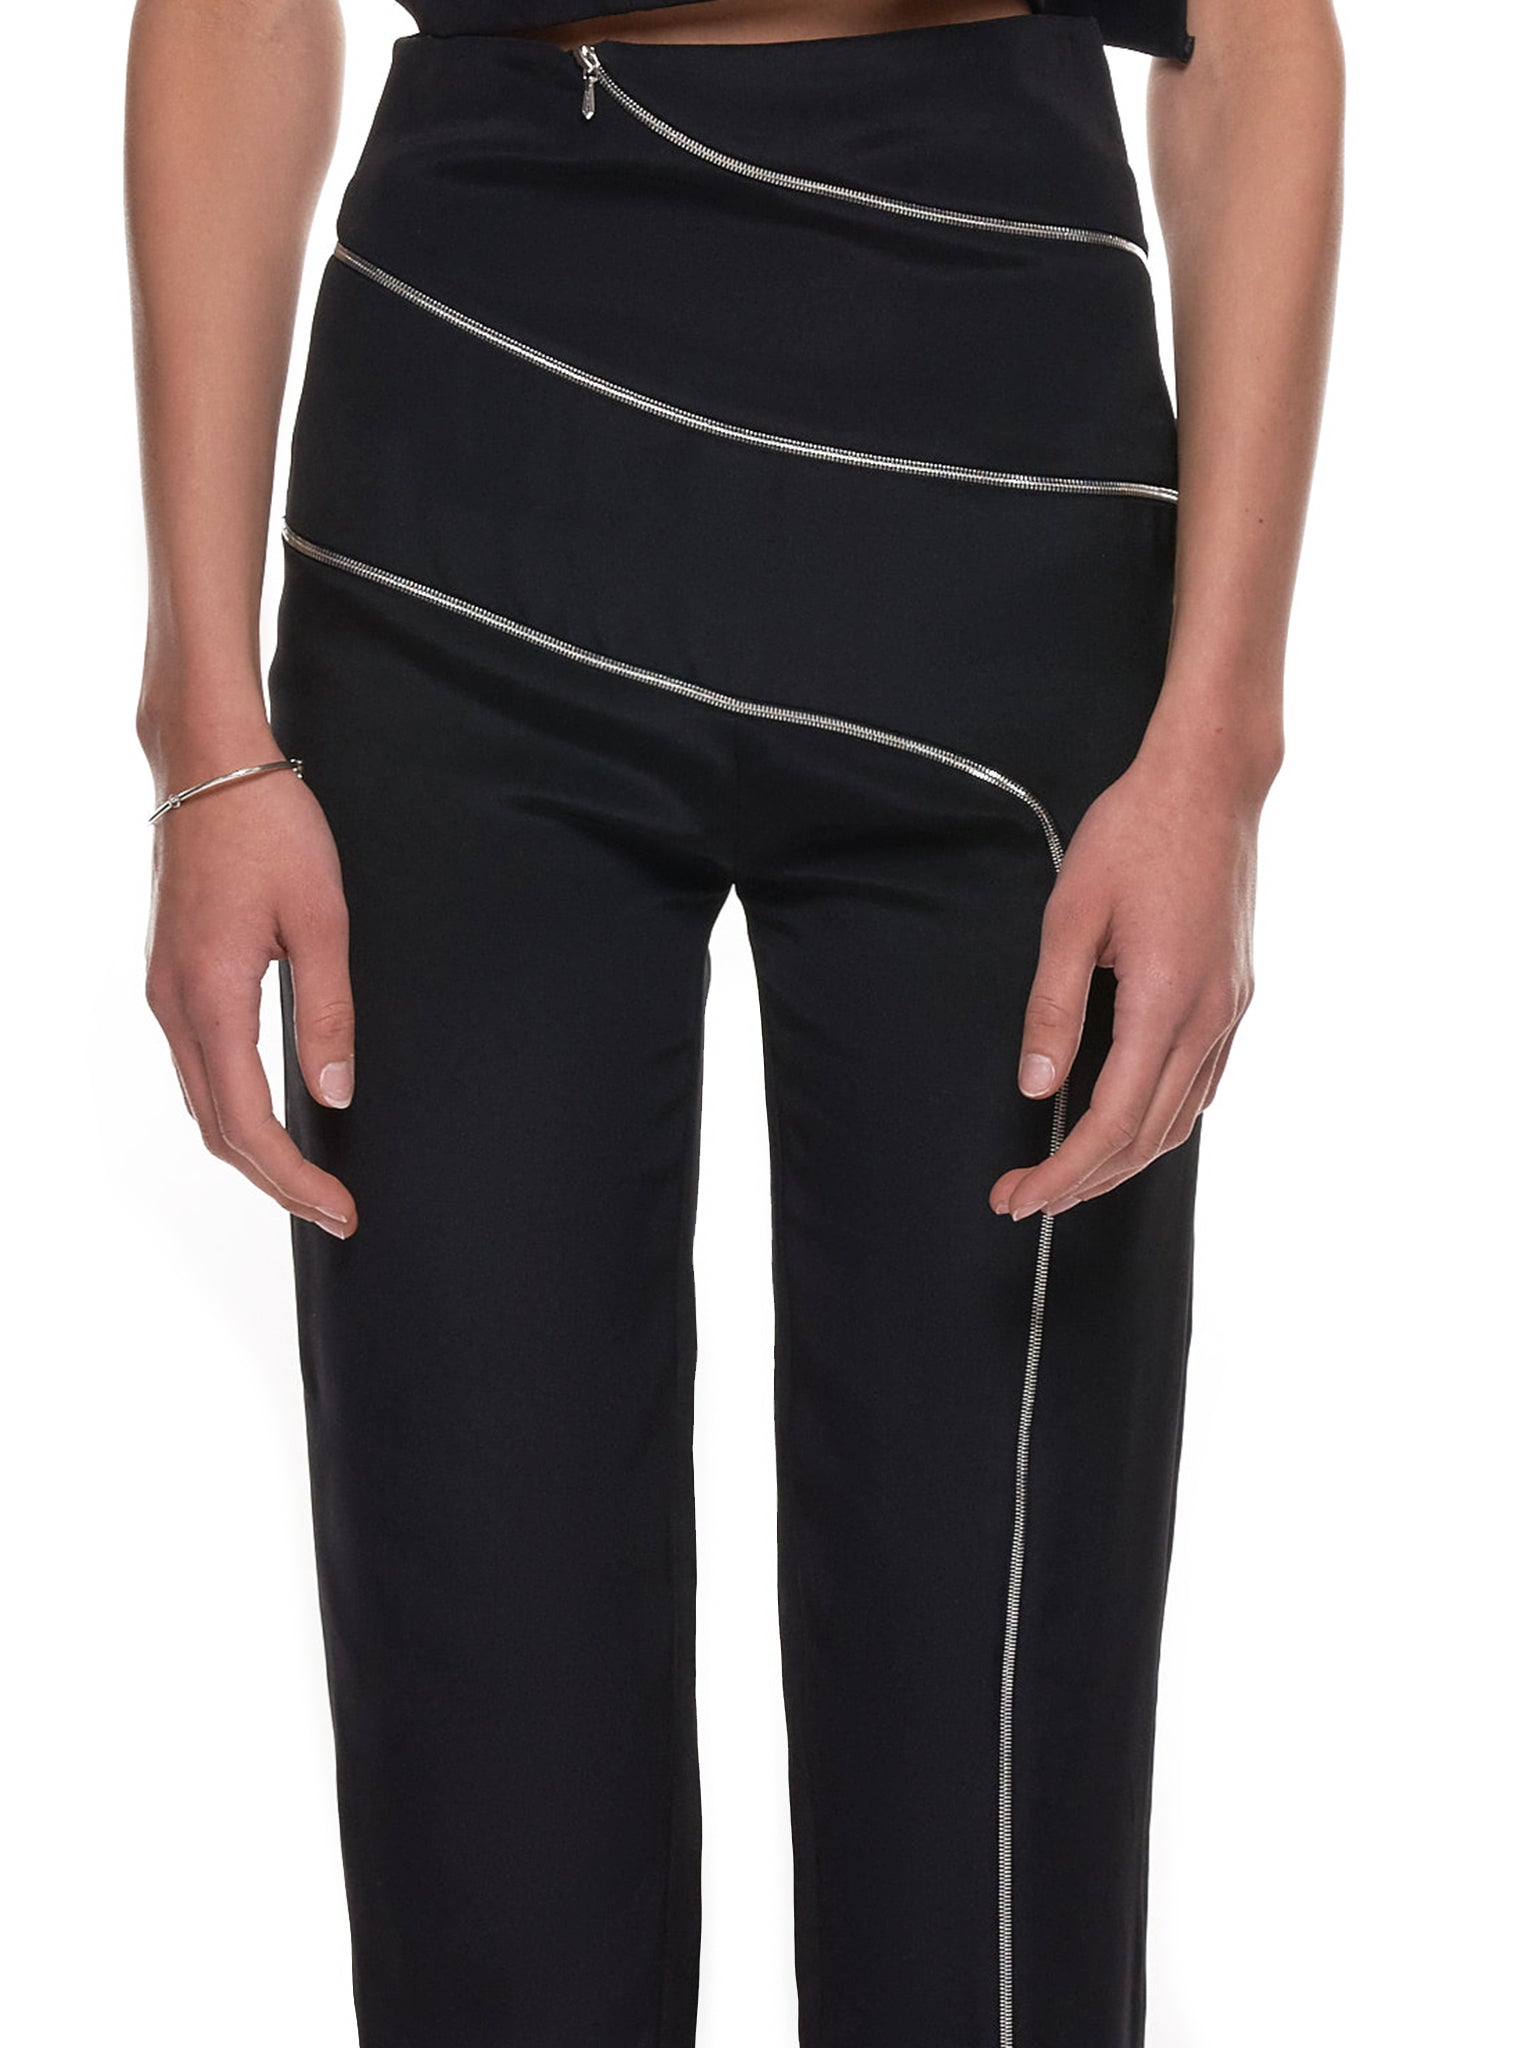 Nicolas Lecourt Mansion Pants - Hlorenzo Detail 1